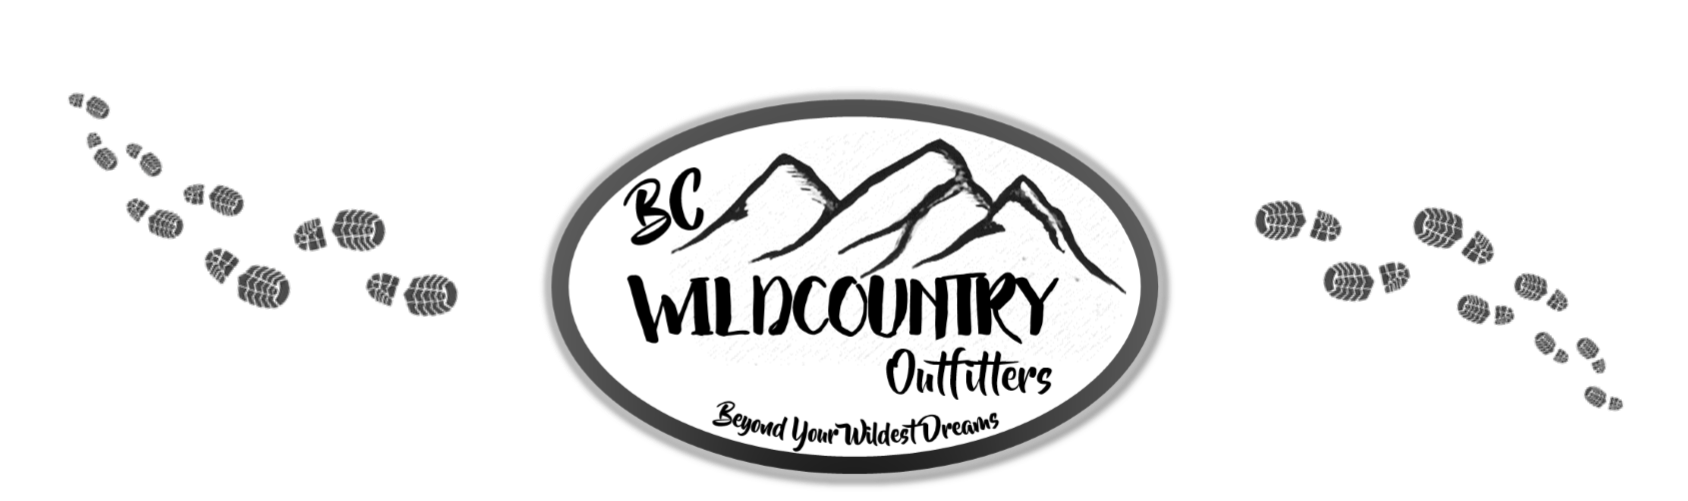 Camps BC WildCountry Outfitters